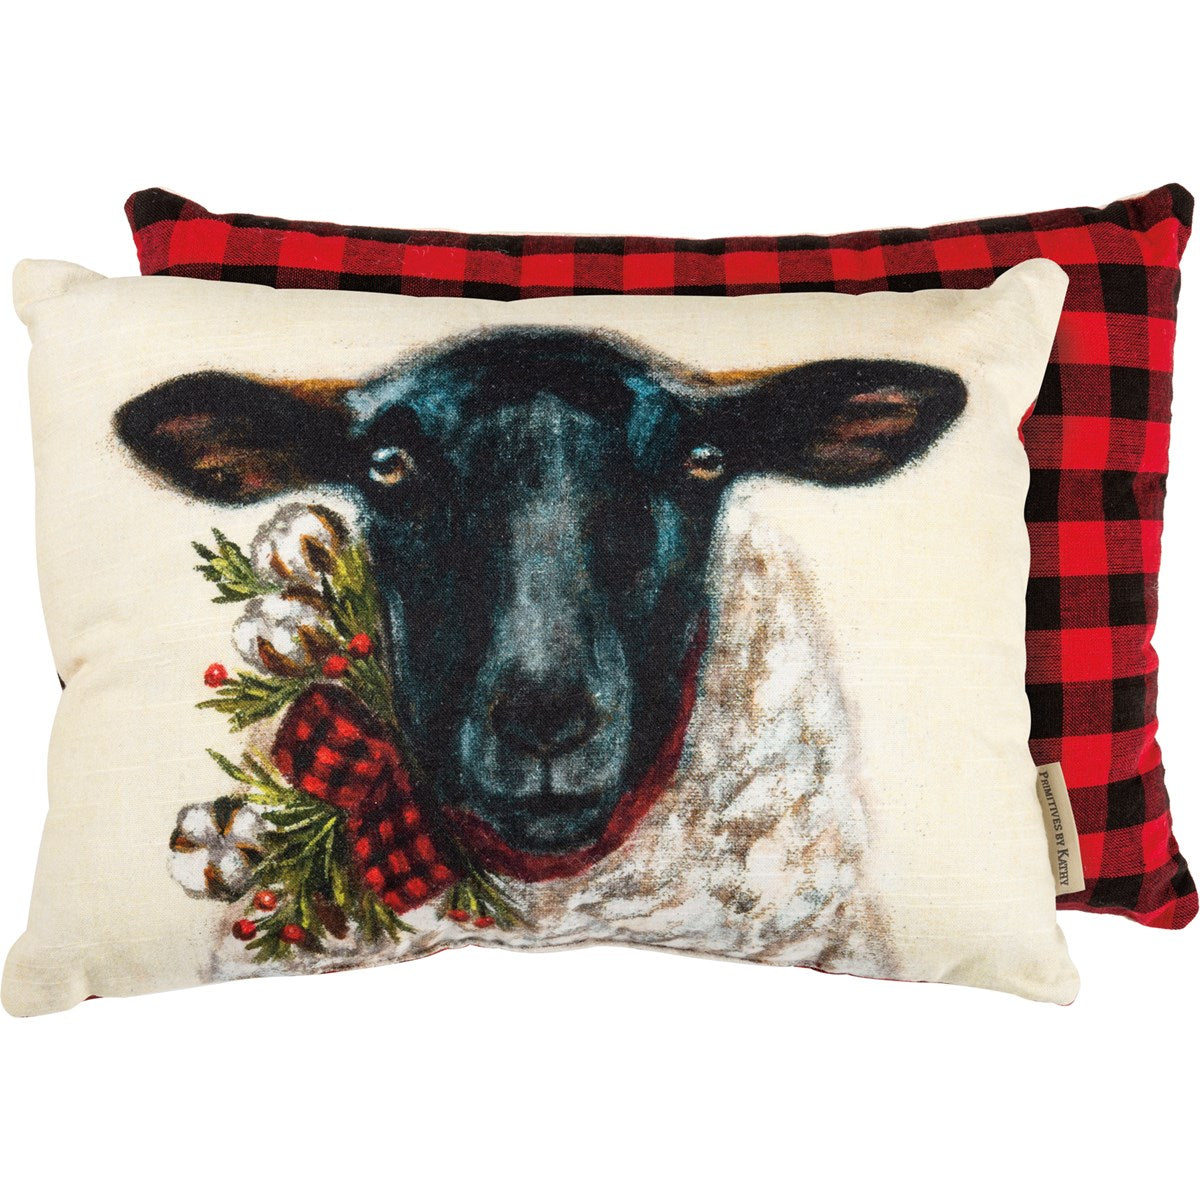 Pillow - Sheep